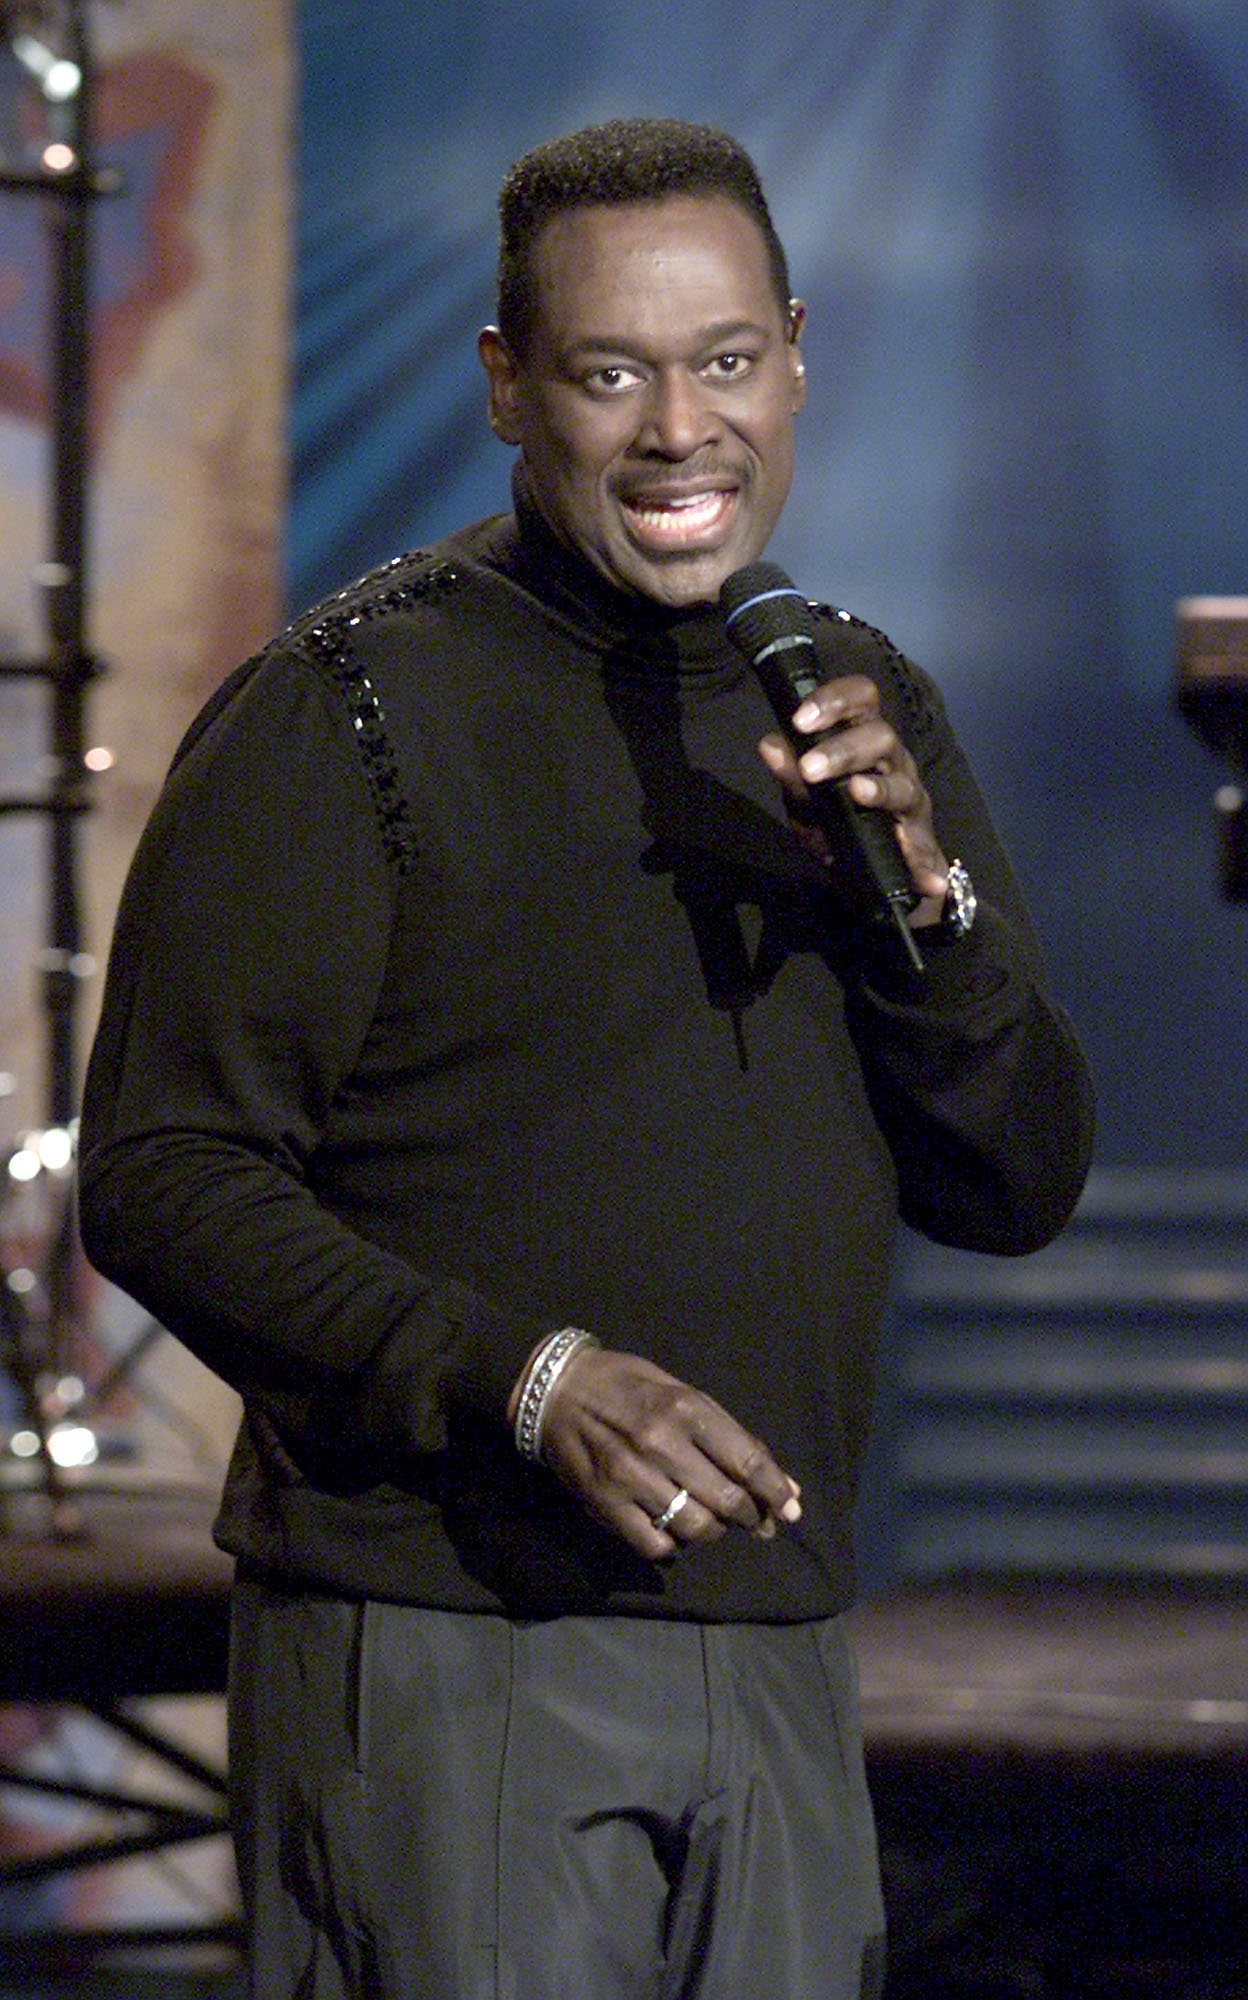 Luther Vandross at the 'Tonight Show with Jay Leno' at the NBC Studios in California on Jun. 20, 2001. |Photo: Getty Images